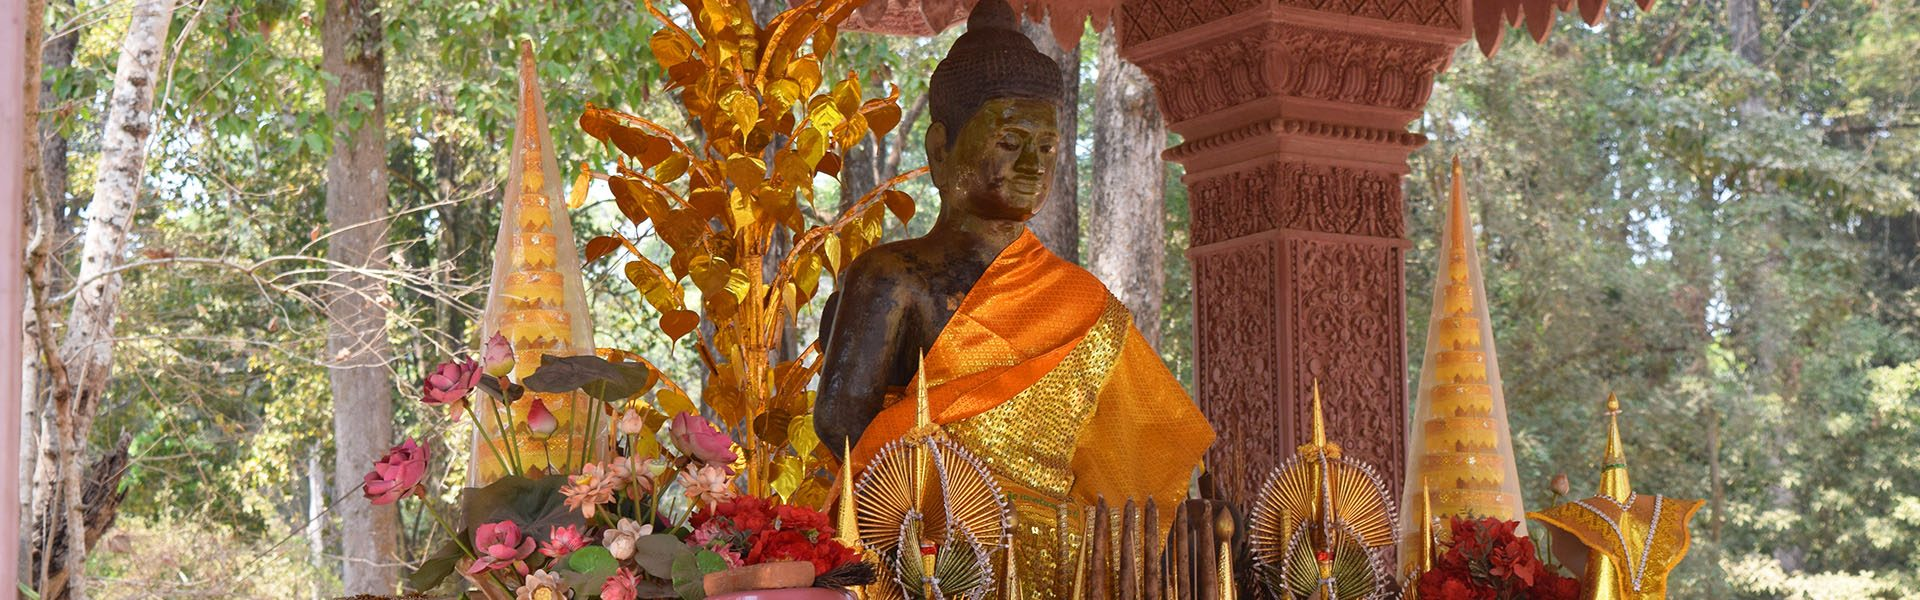 A golden Statue surrounded by brightly covered trinkets